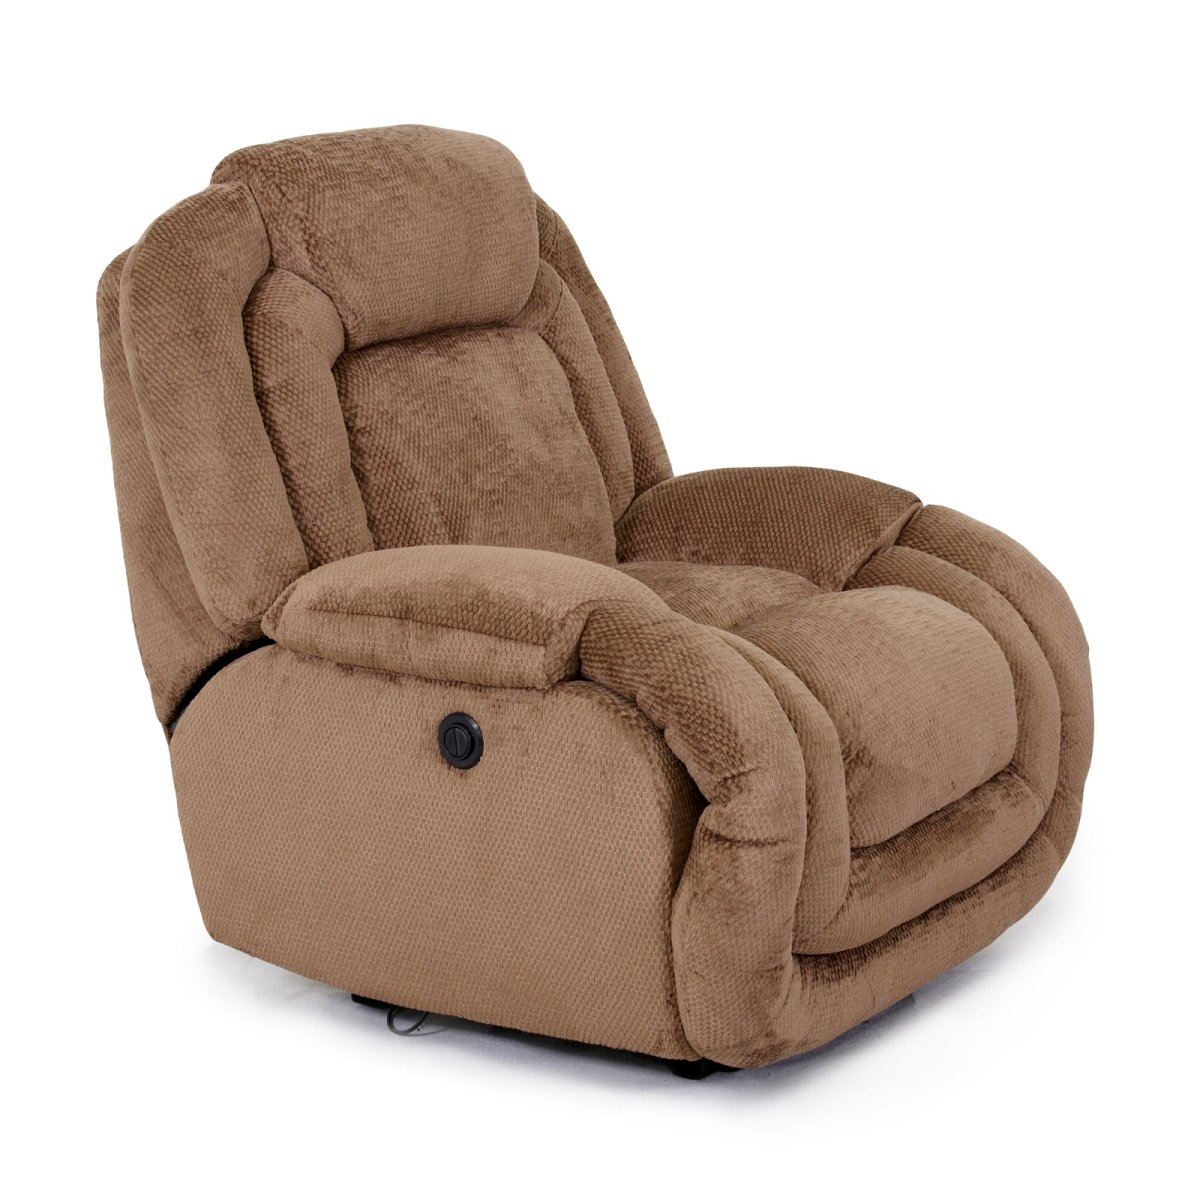 Barcalounger Apex II Recliner Chair